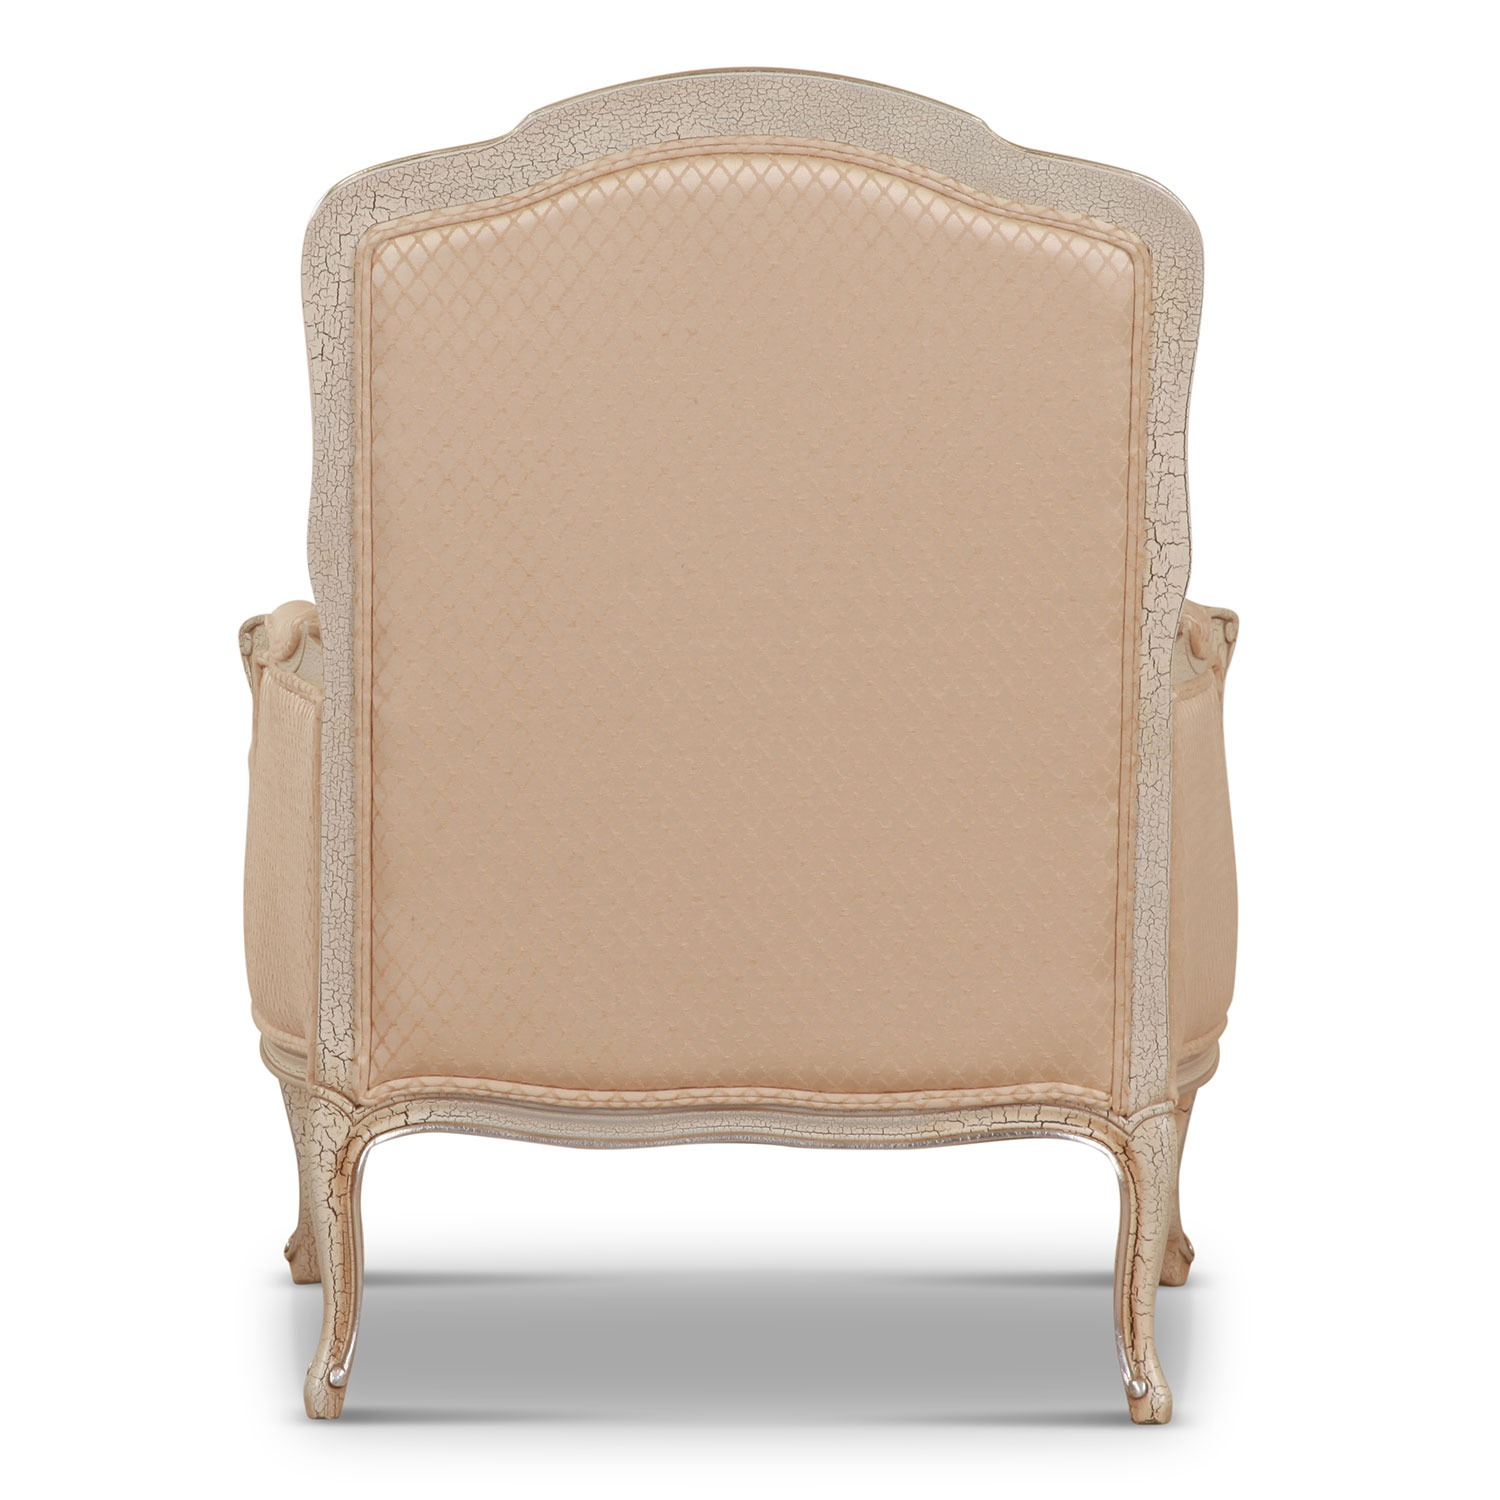 Tuscany chair with crackled frame